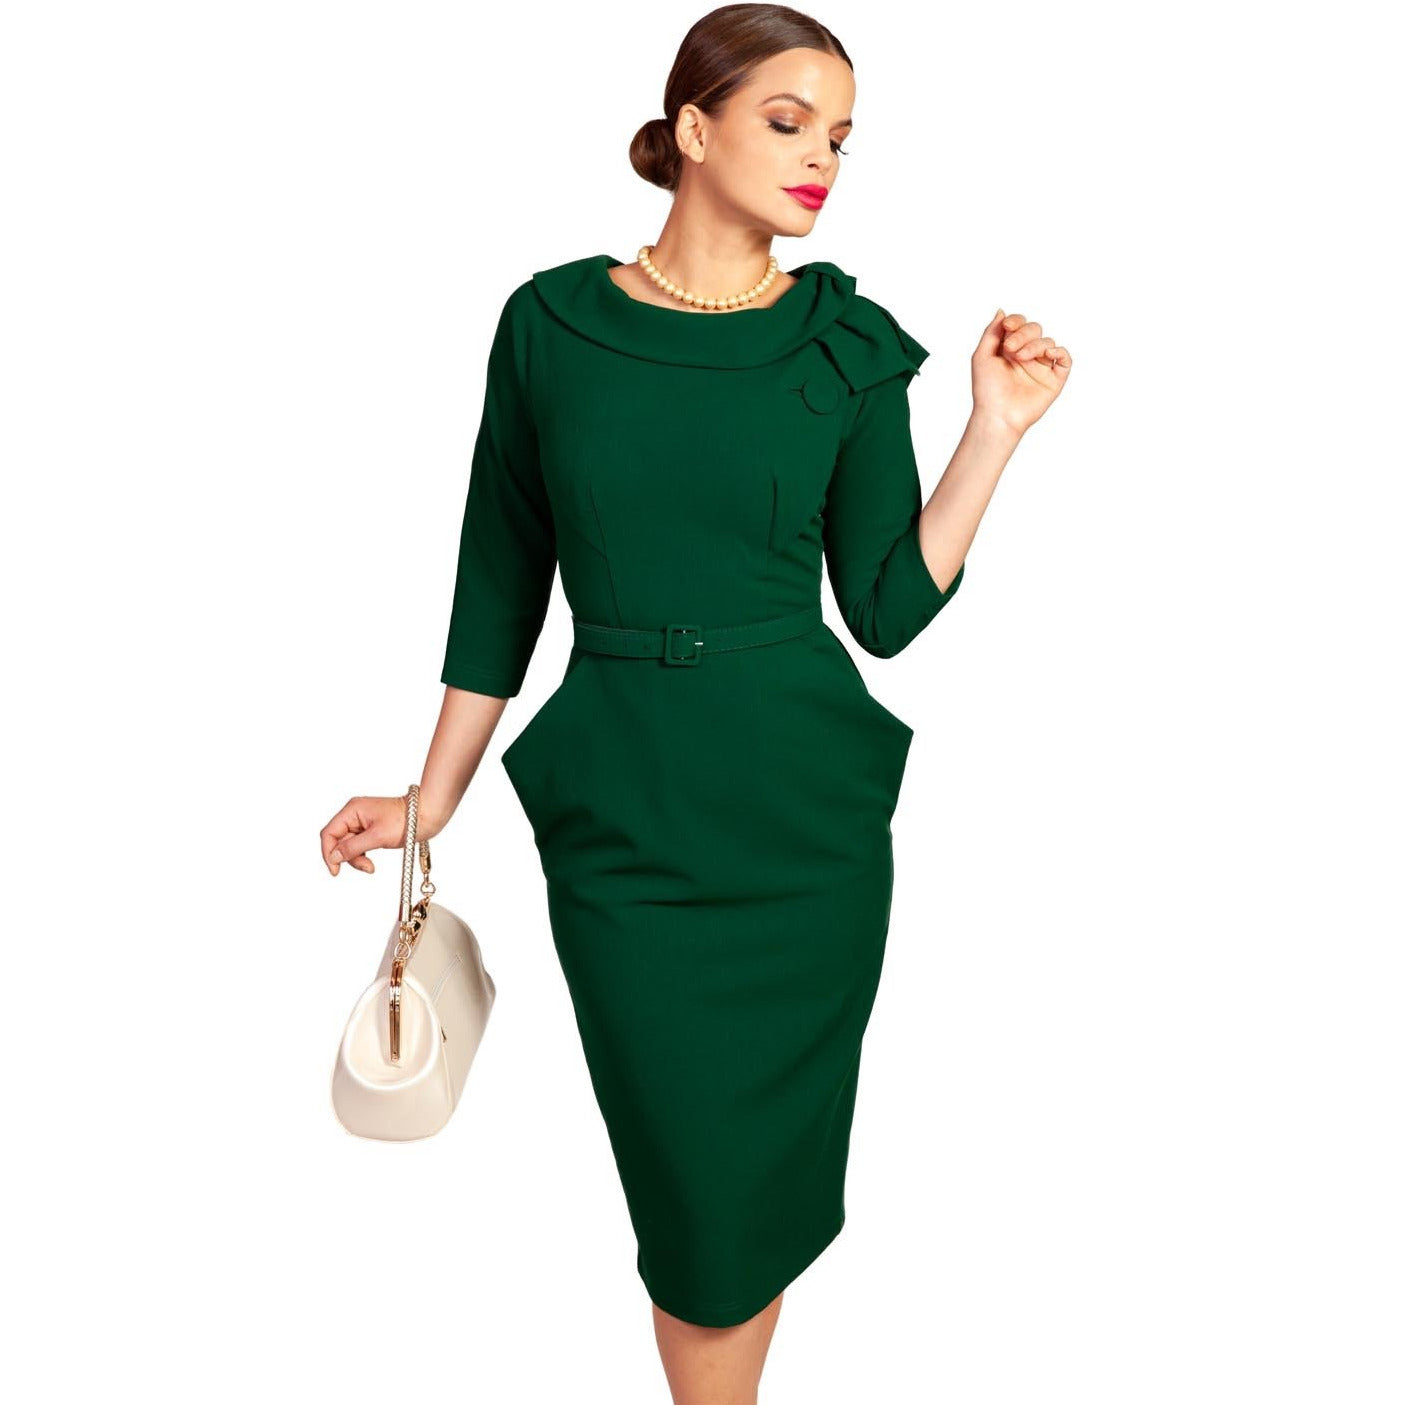 Grace & Glam Evita Dress Green